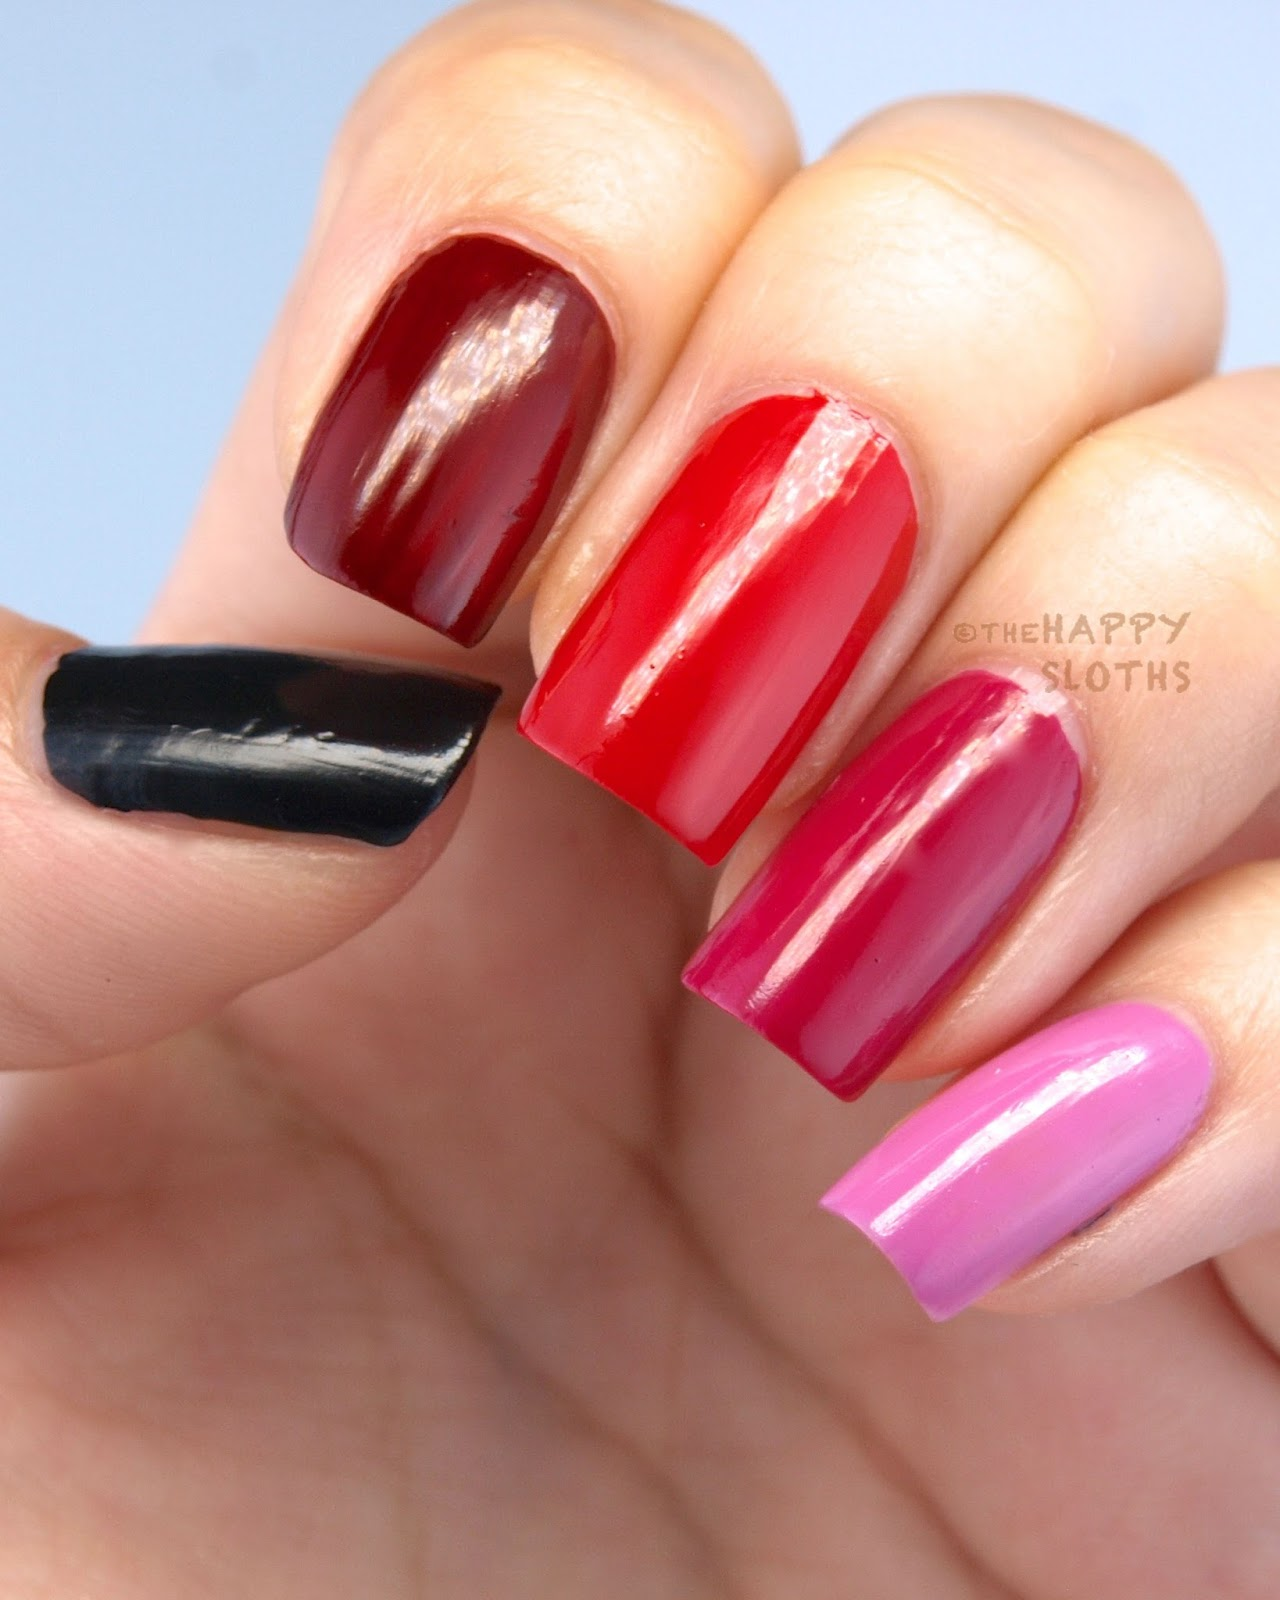 Formula X Paint The Town 22 Piece Mini Nail Polish Set Review And Swatches The Happy Sloths